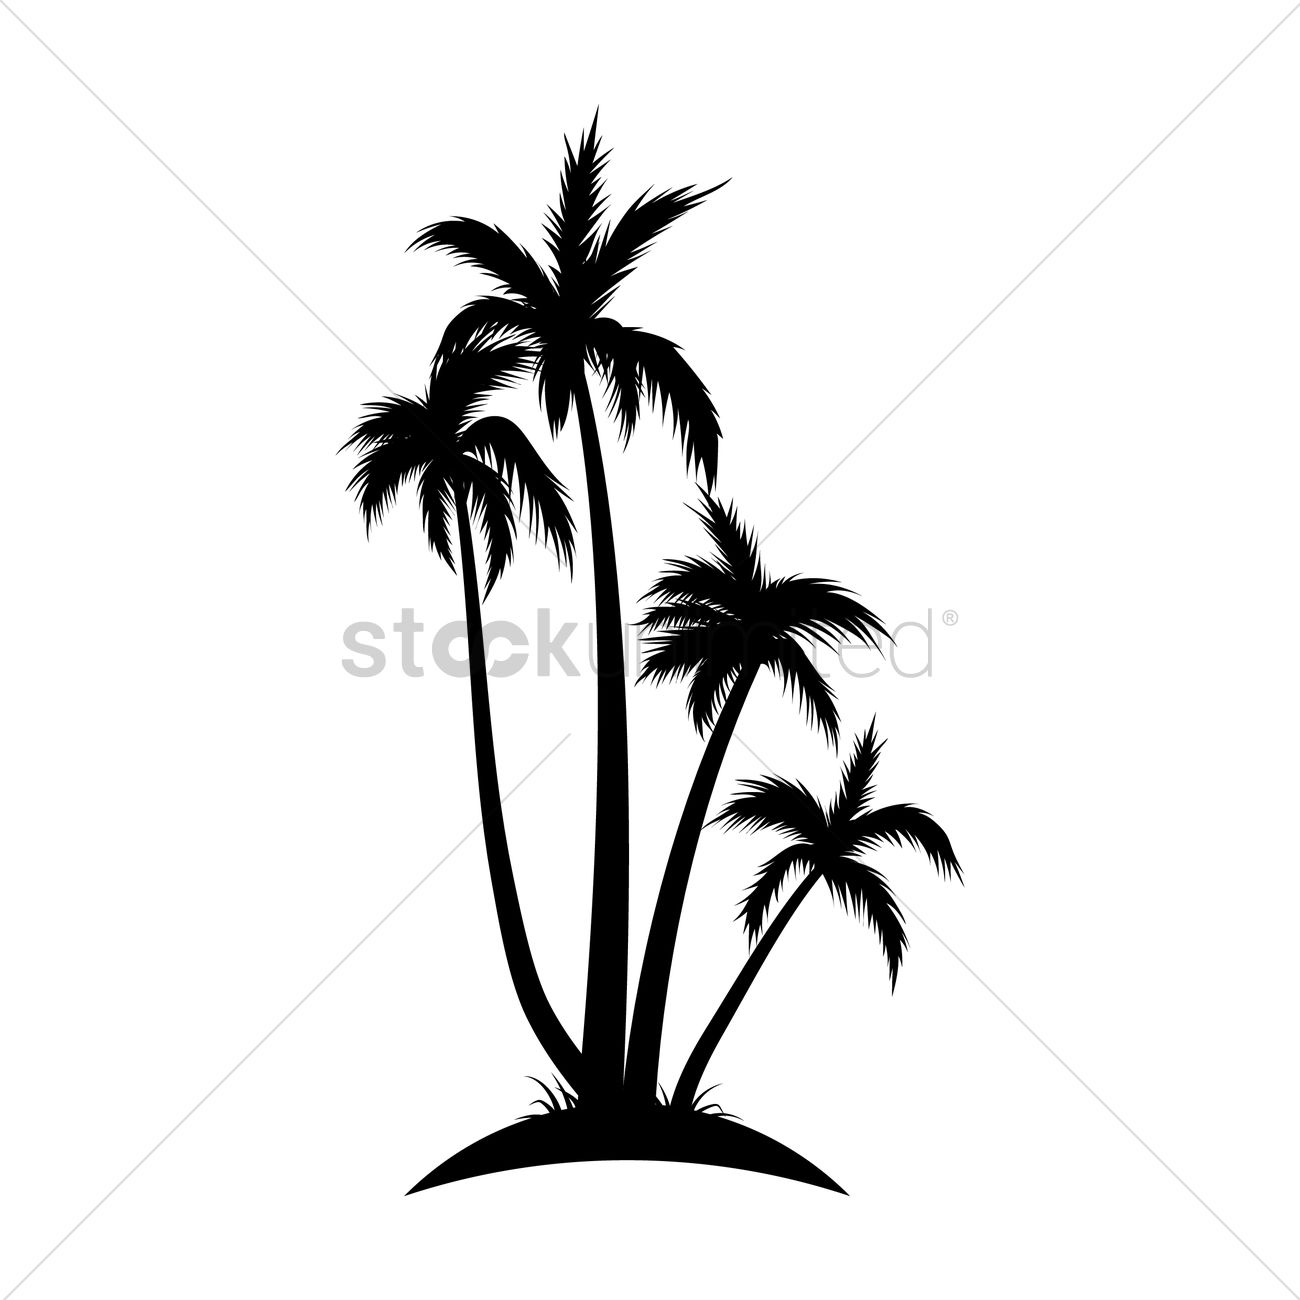 1300x1300 Silhouette Of Coconut Tree Vector Image